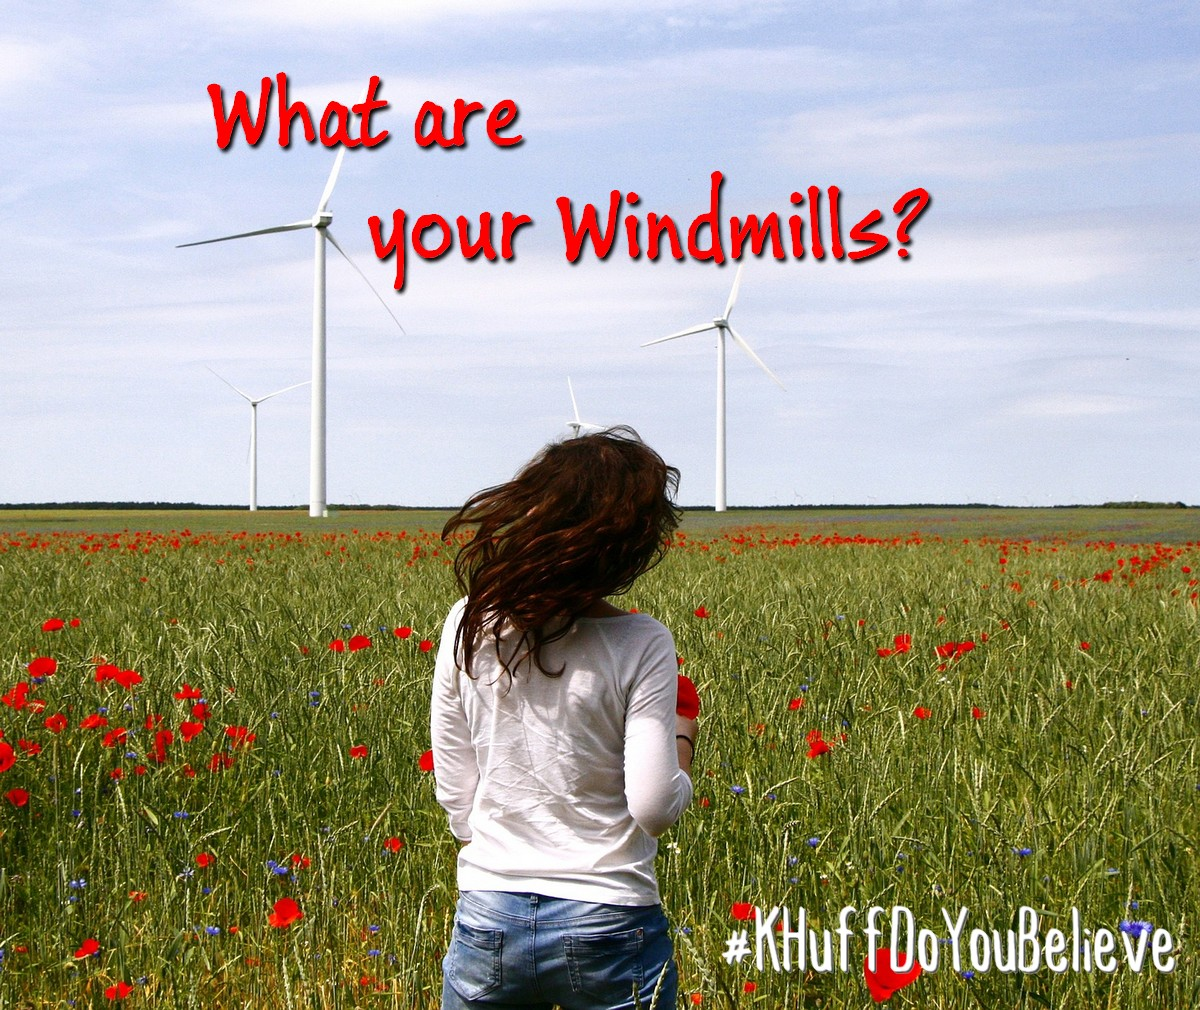 What are your Windmills